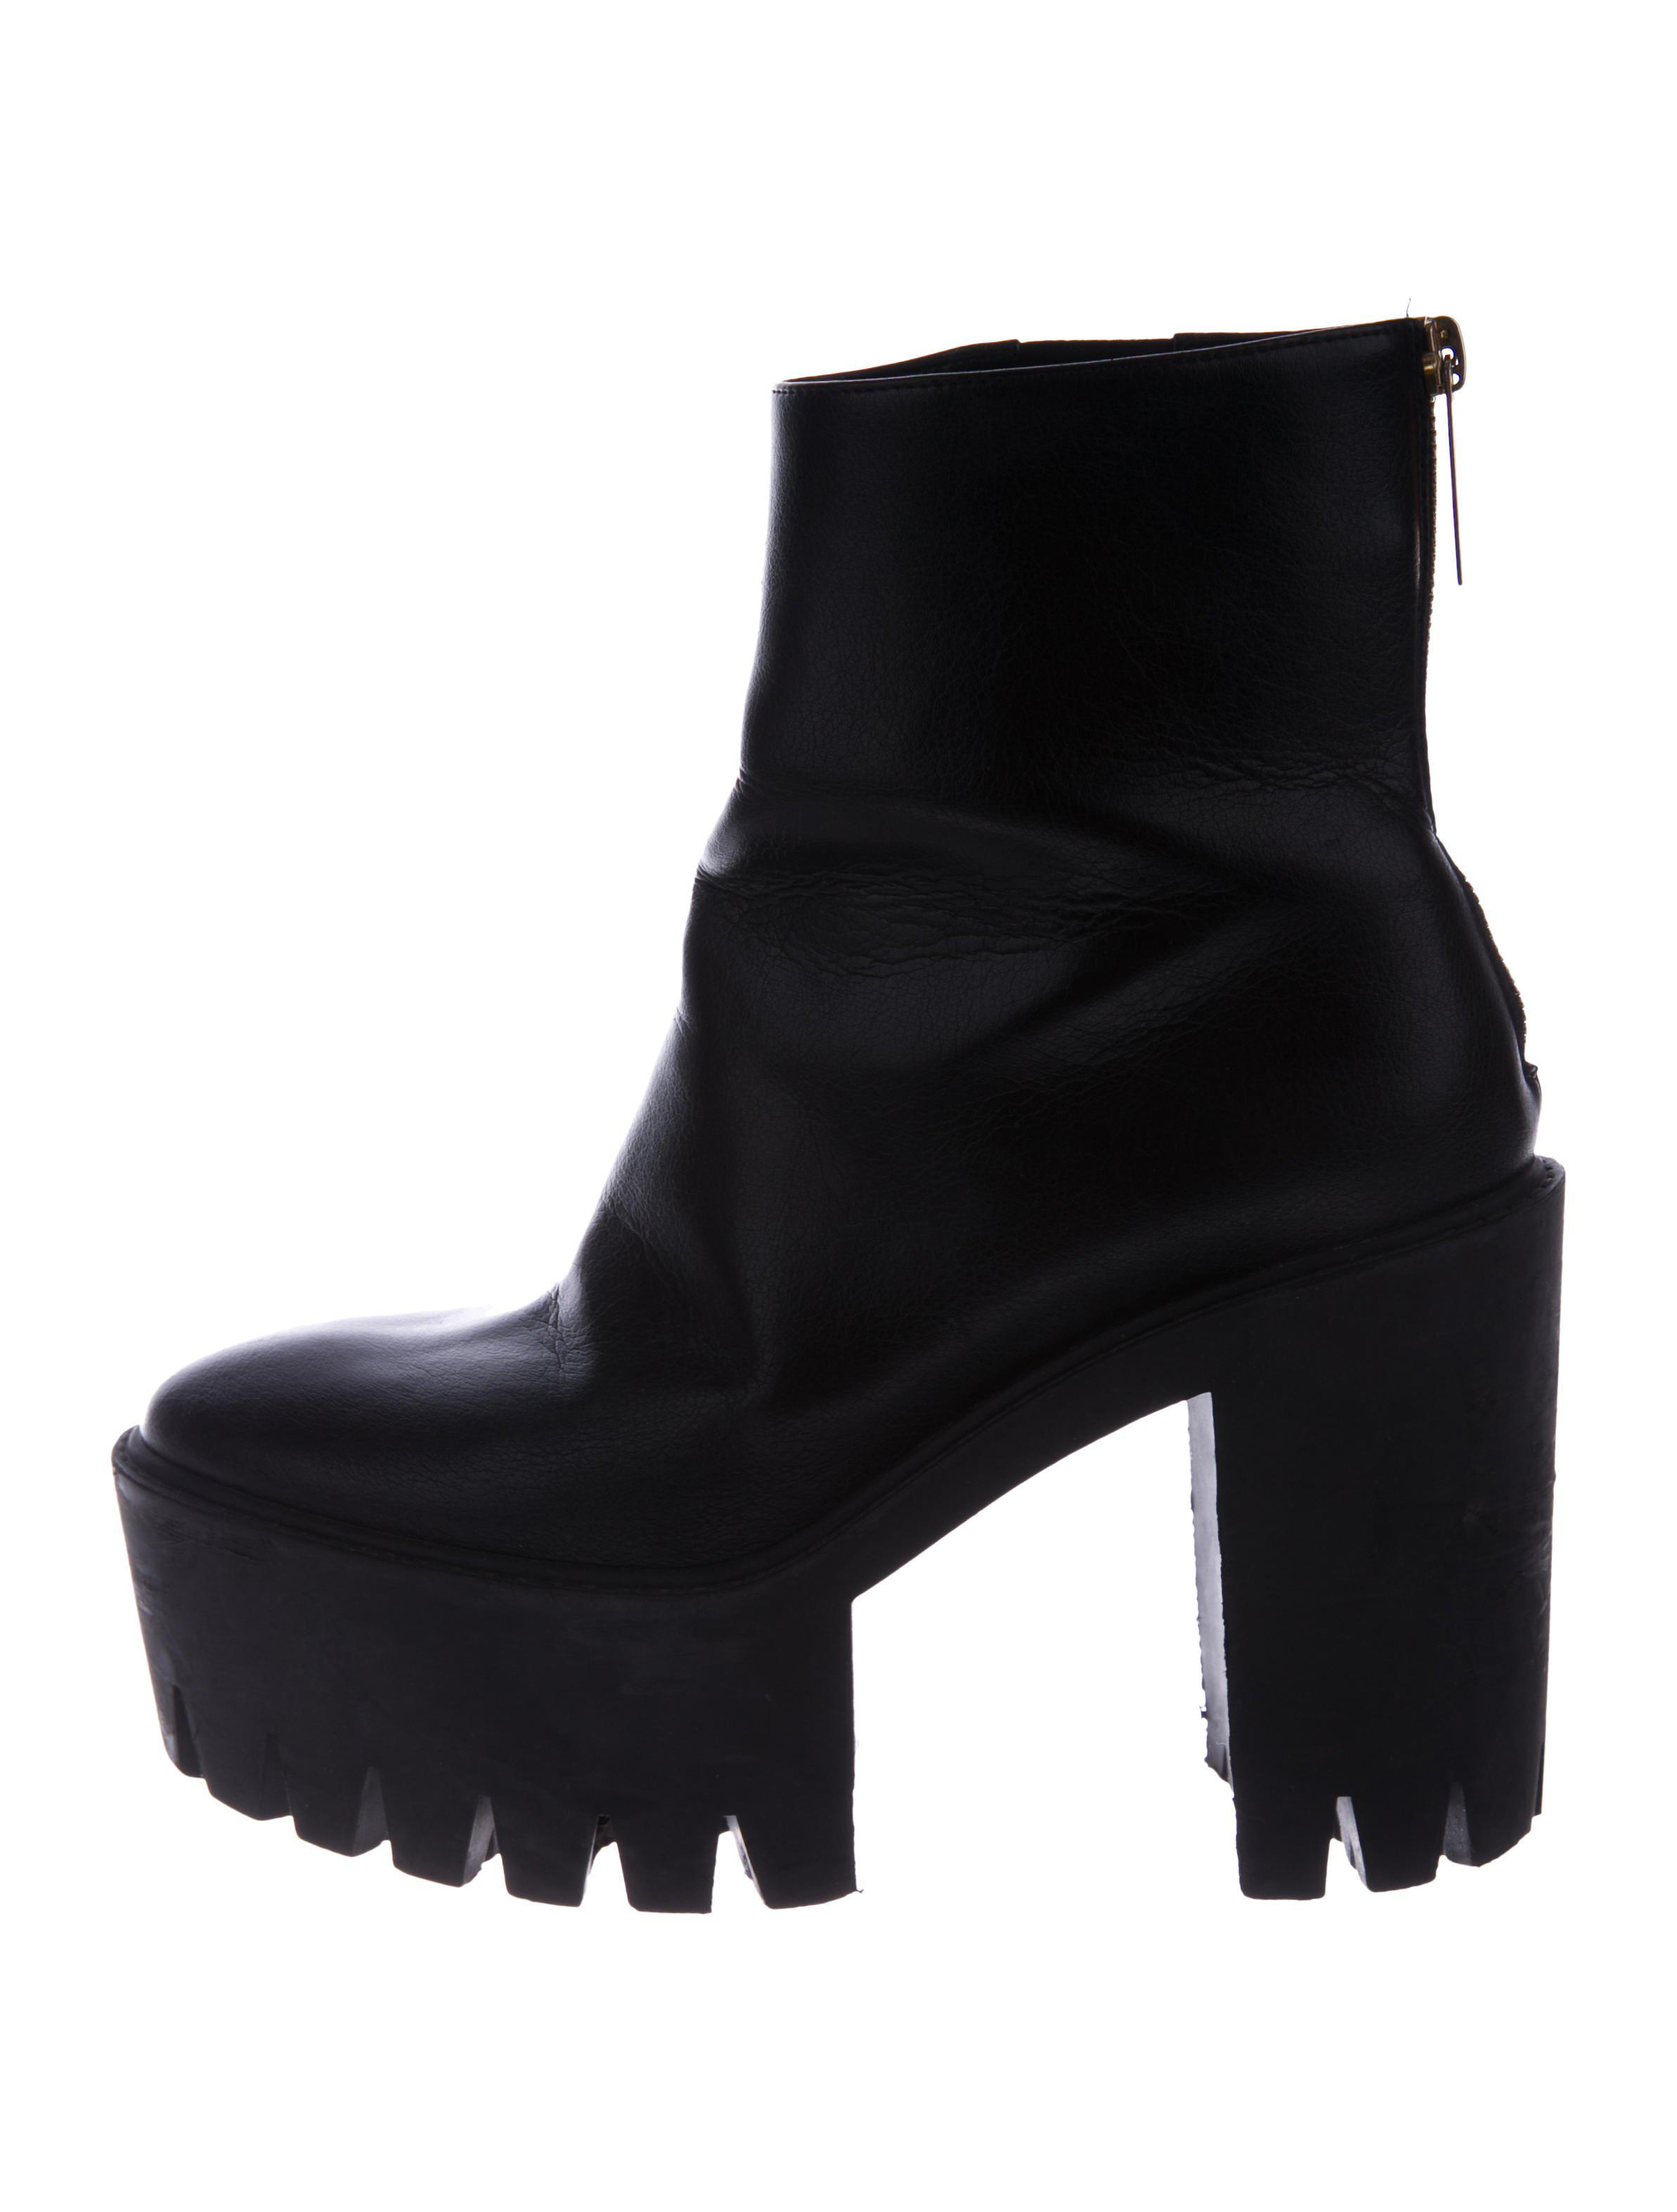 815d08d62c5 Lyst - Stella Mccartney Vegan Leather Platform Booties in Black